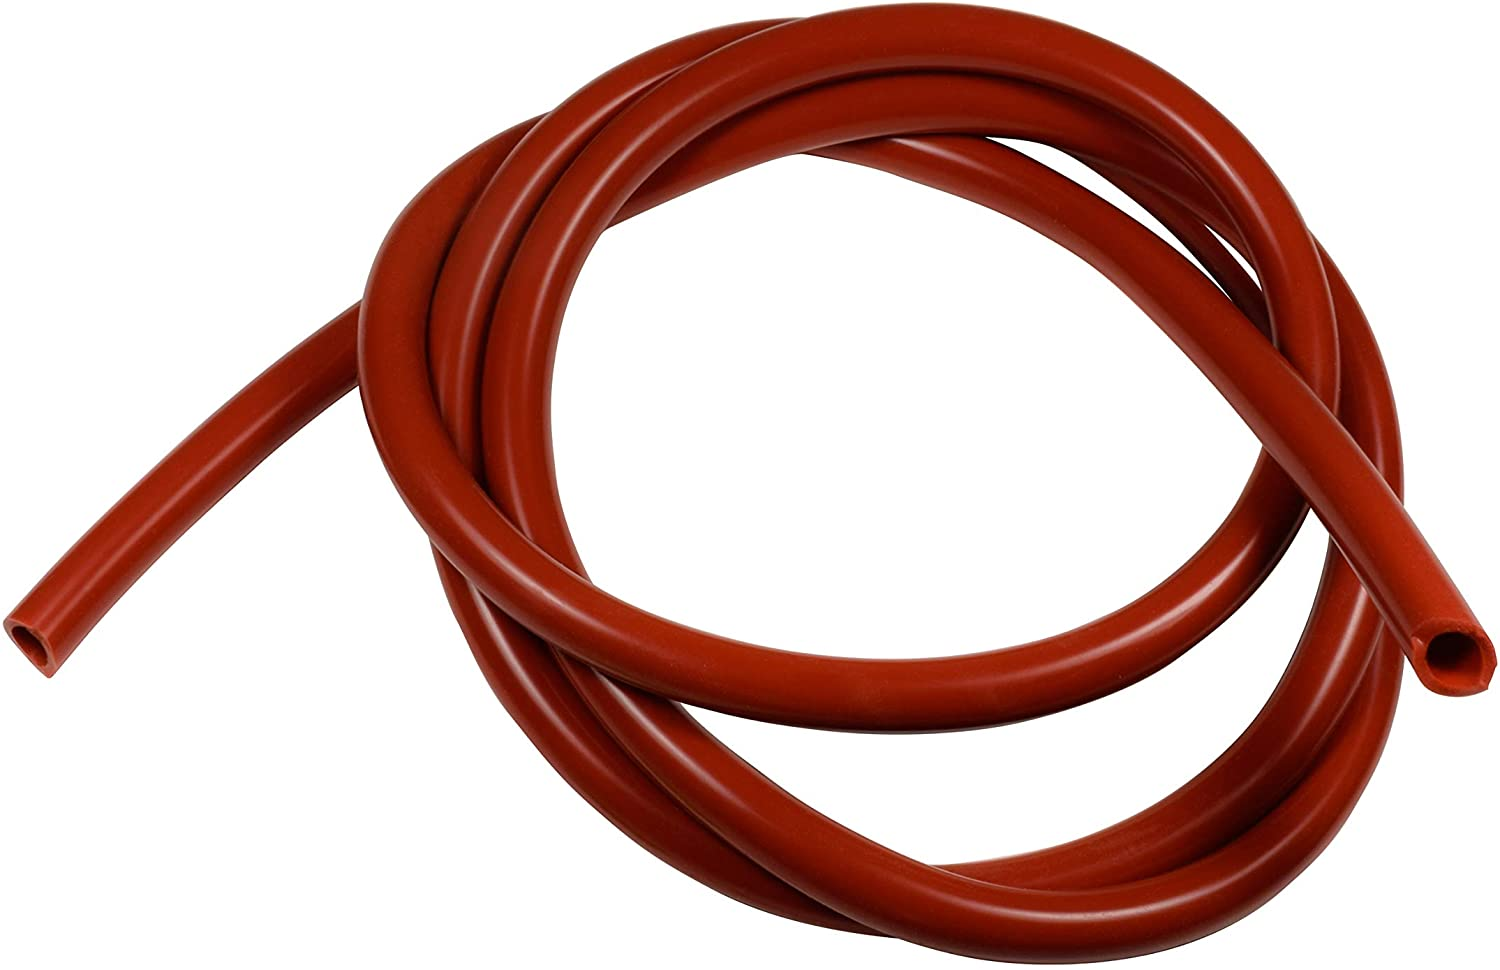 Univen High Temp Food Grade Red Silicone Tubing 8mm ID X 12mm OD Per Foot (5)